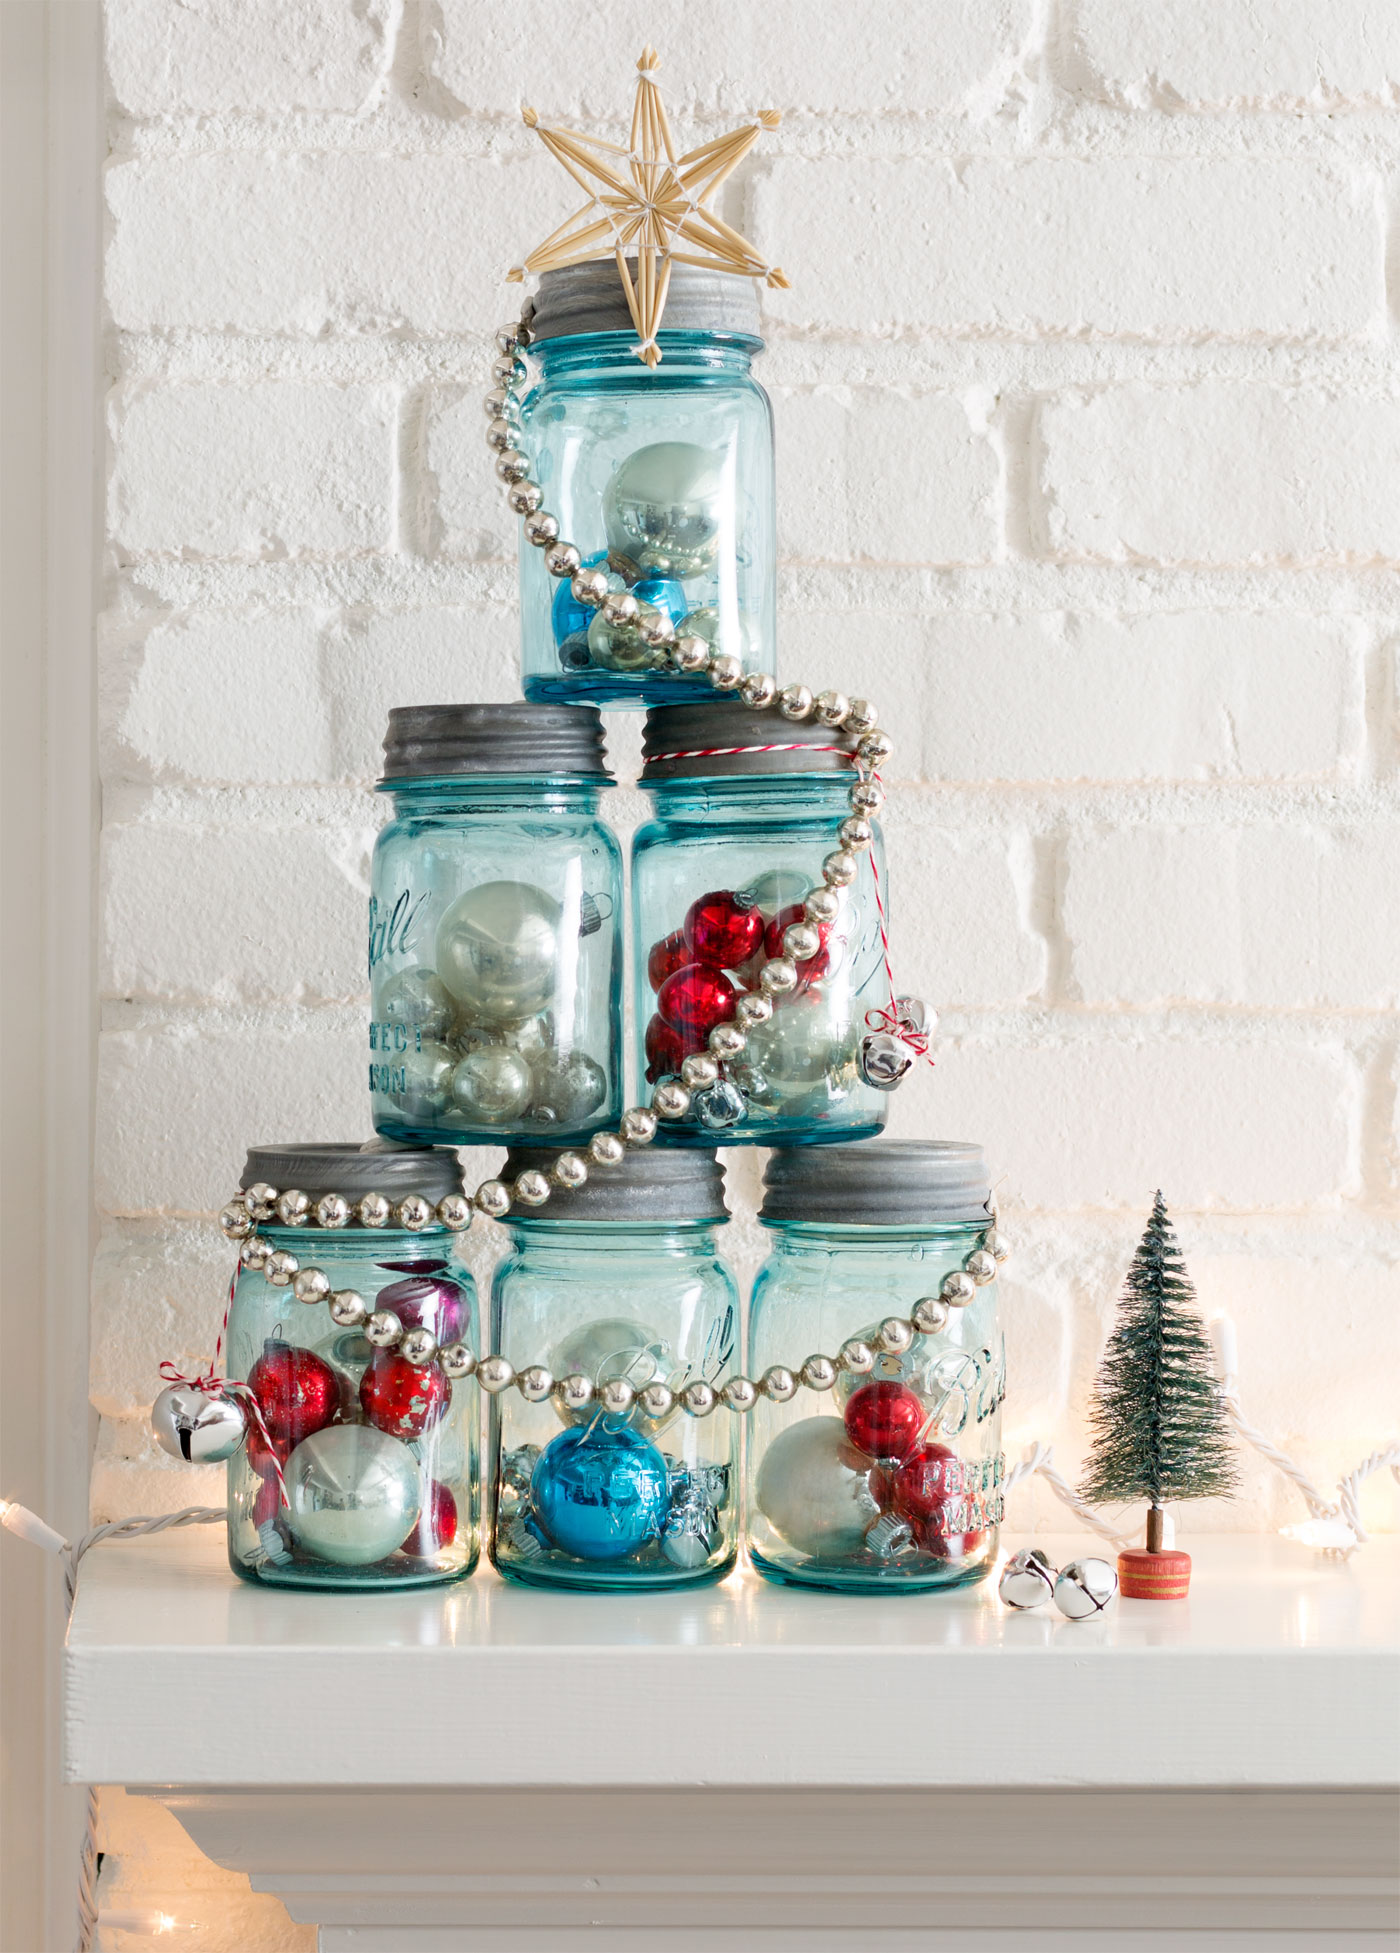 ad magical ways to use mason jars this - Christmas Jar Decorations